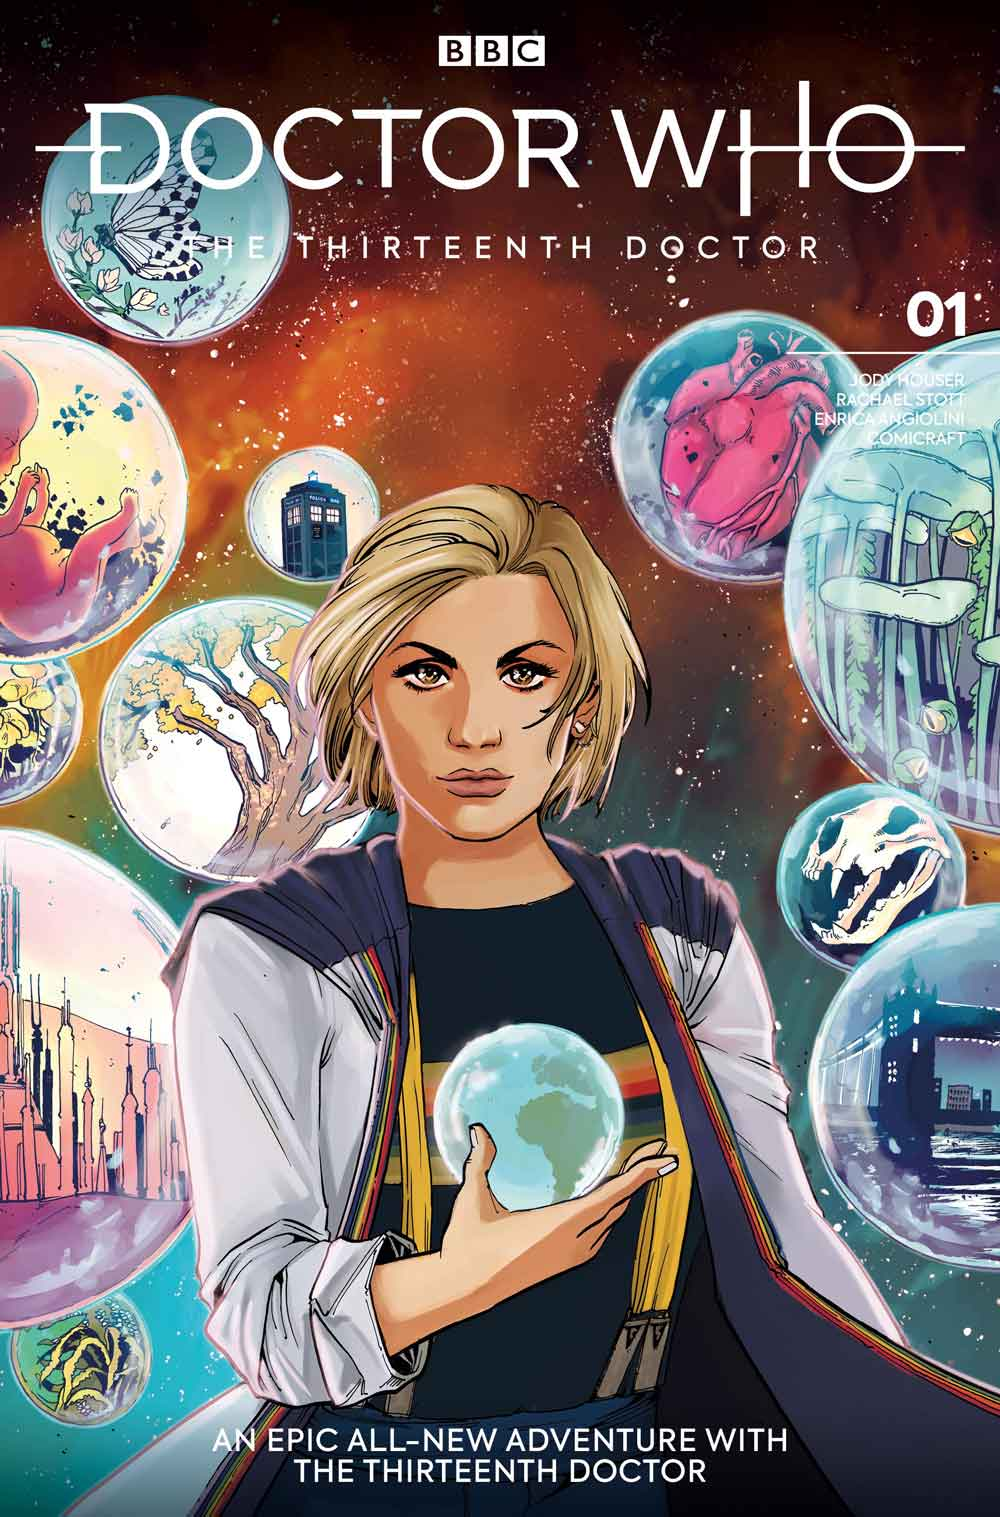 Doctor Who comic cover - Thirteenth Doctor